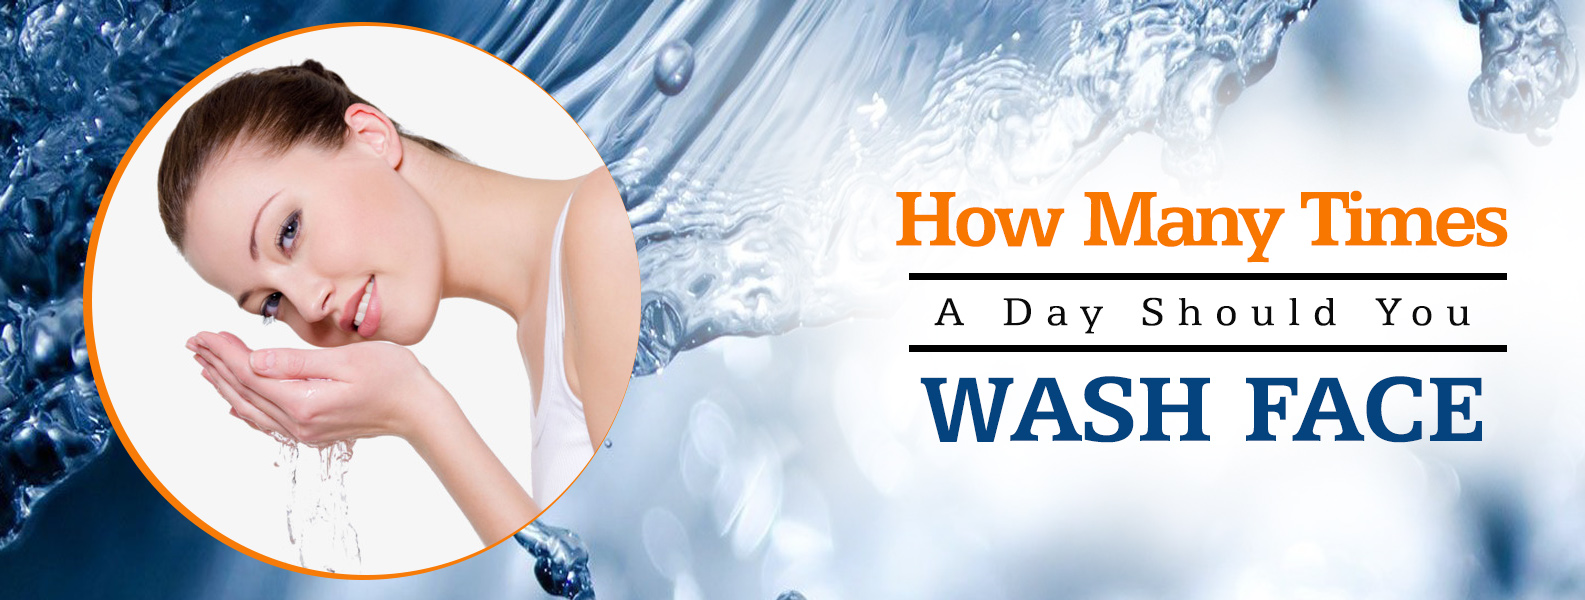 How many times a day should you wash face?